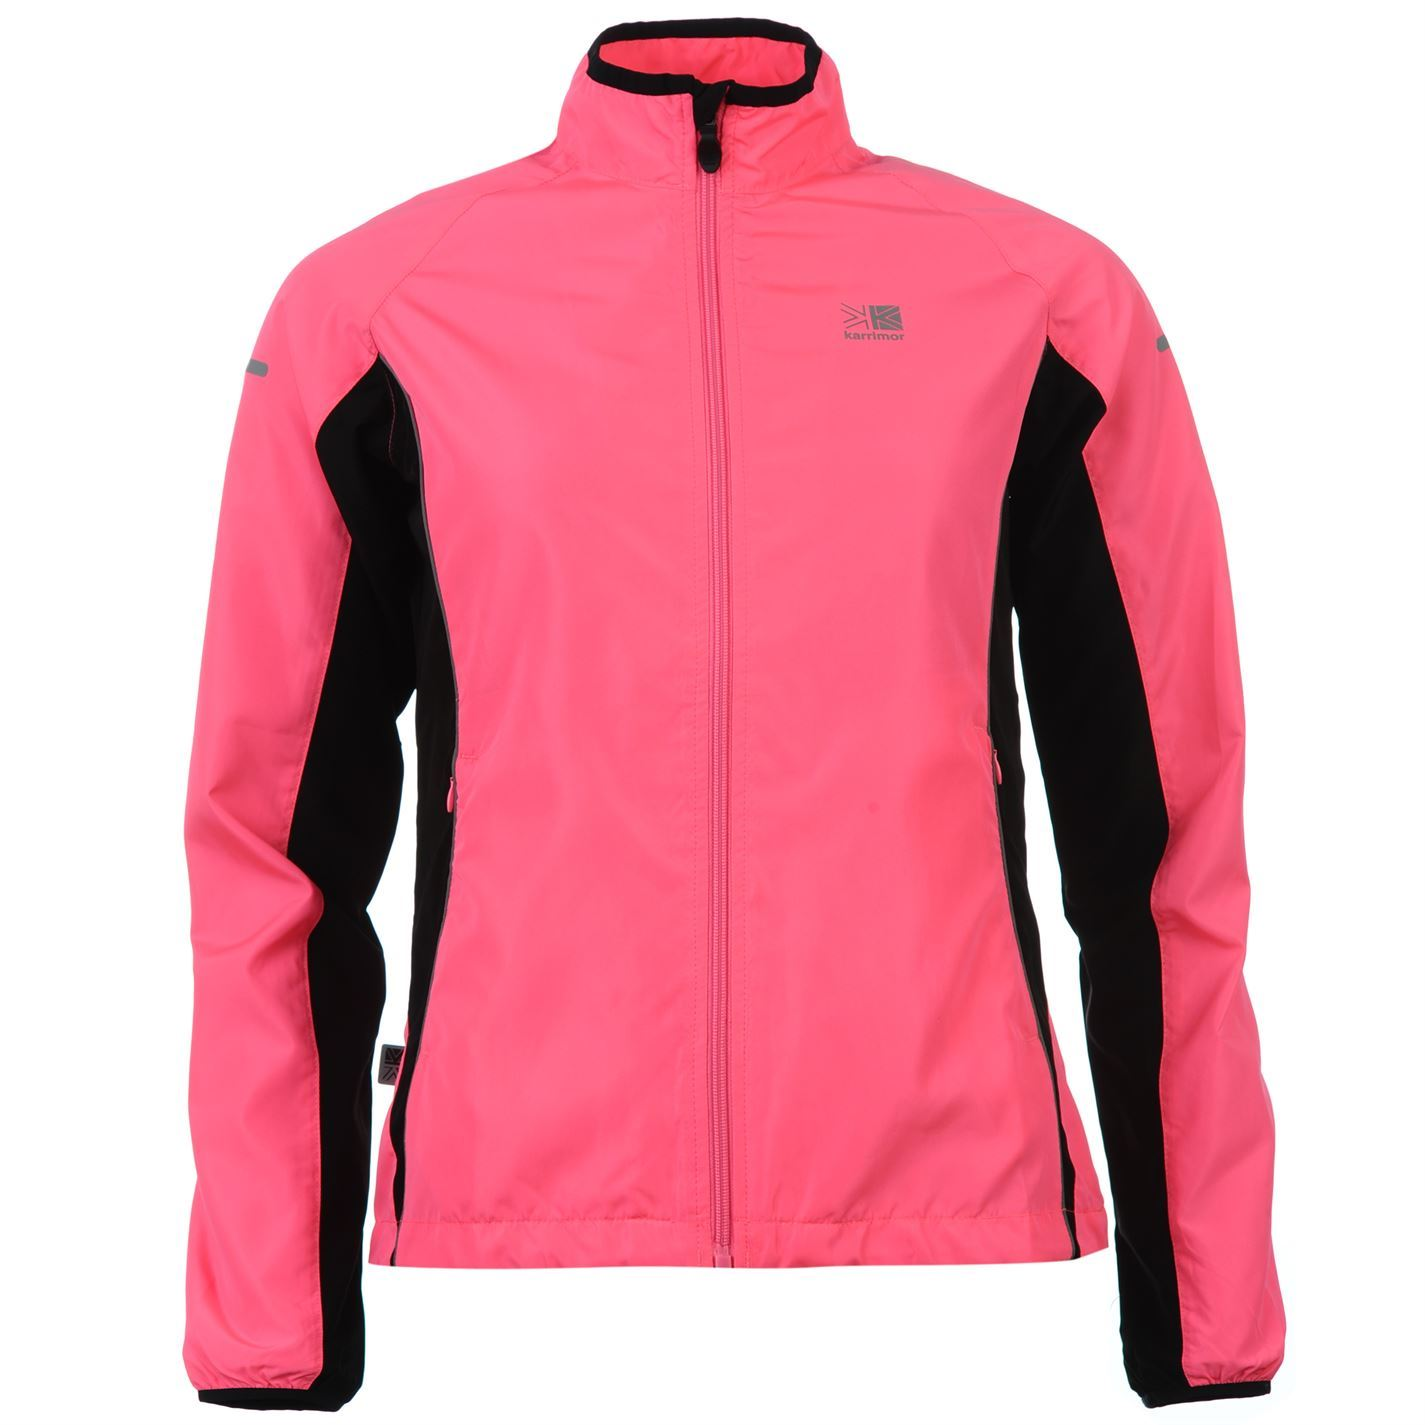 Karrimor-Womens-Ladies-Running-Jacket-Long-Sleeve-Zip-Fastening-Coat-Top-New